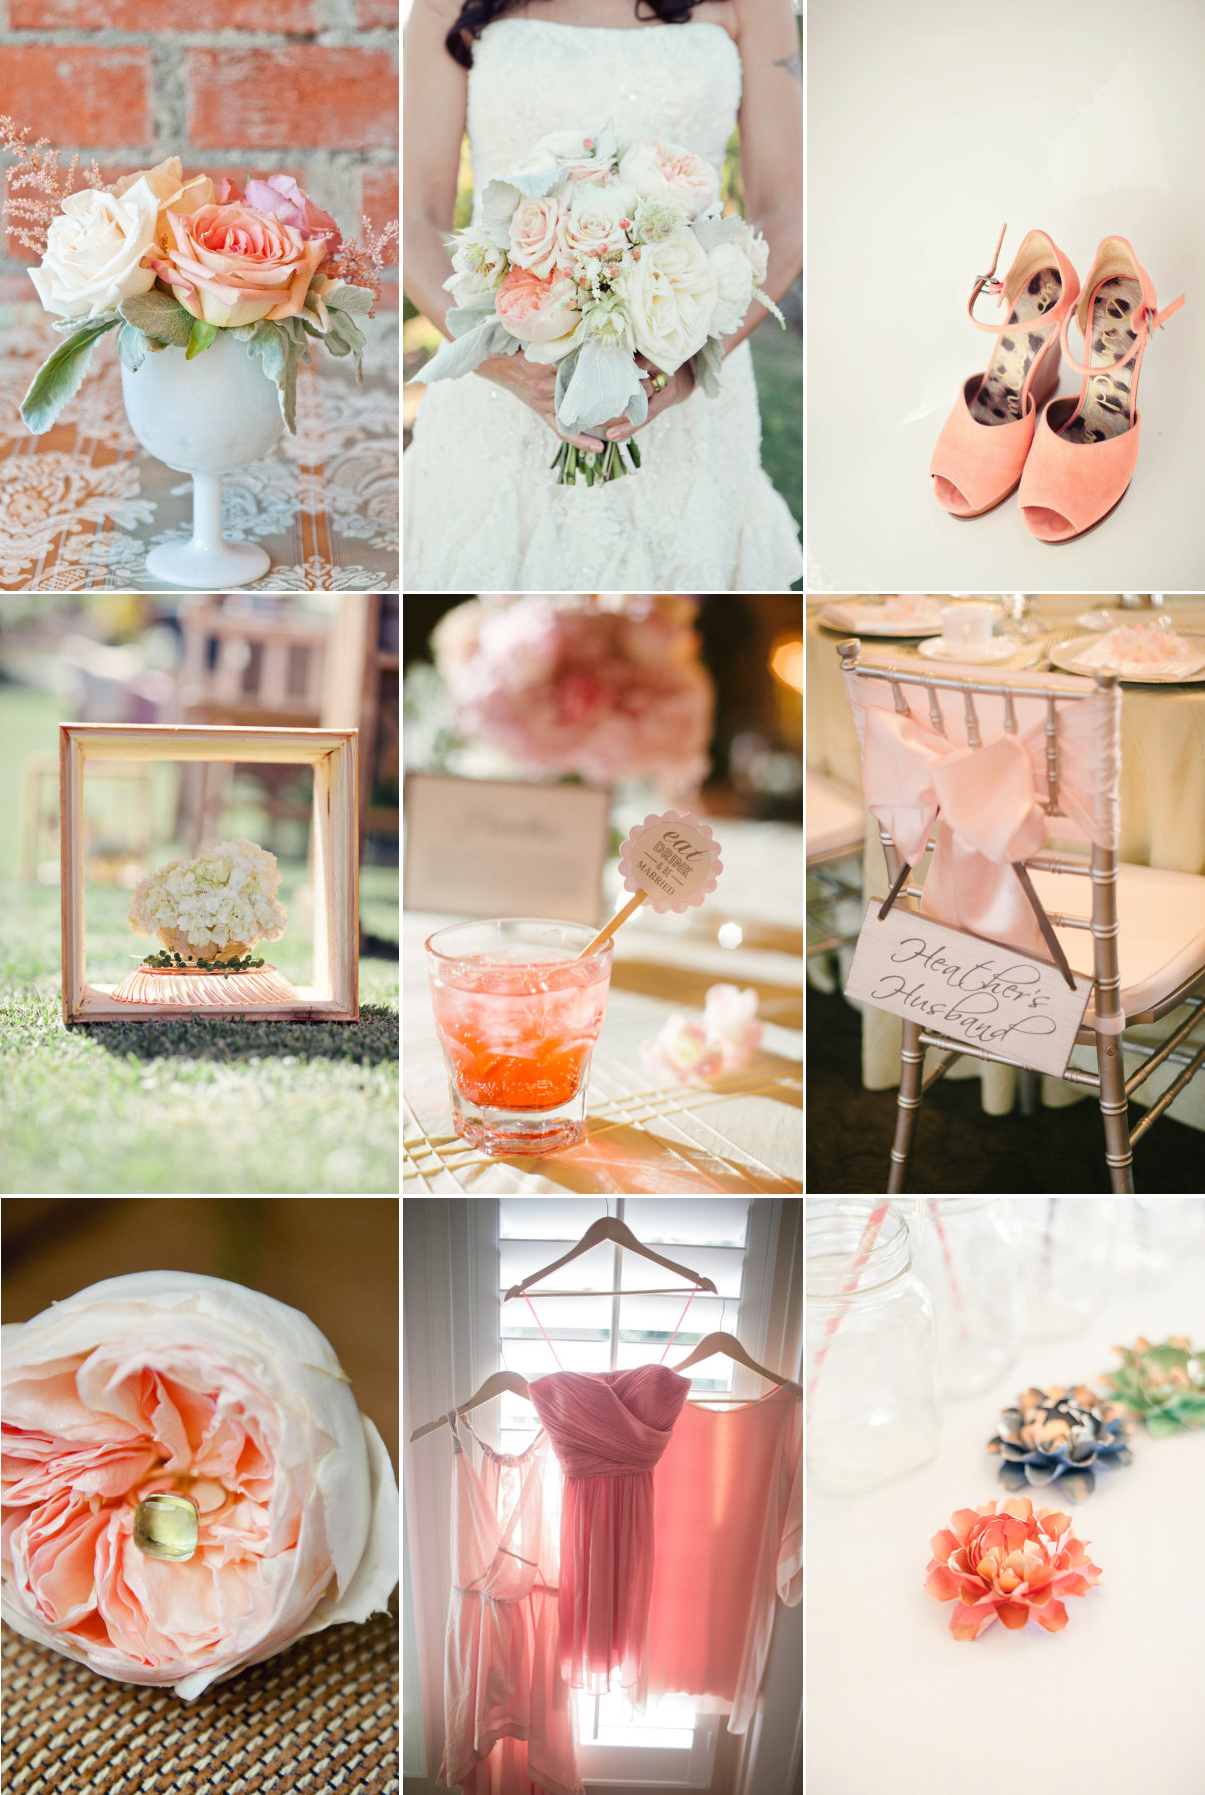 Romantic-wedding-color-inspiration-peach-gold-cream.original